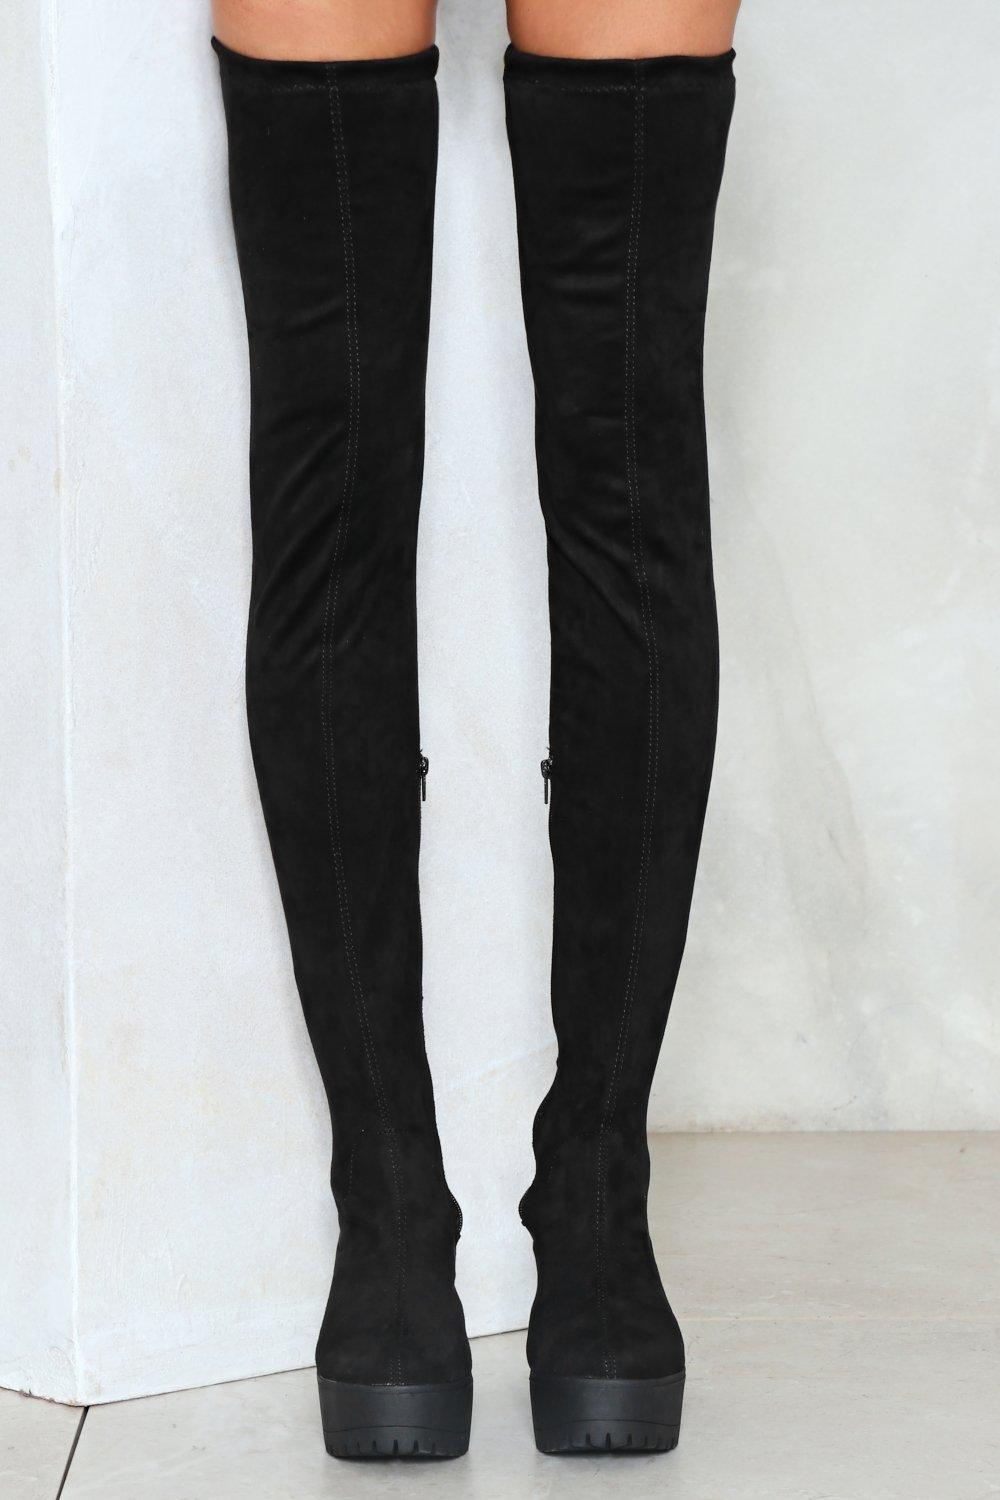 Nasty Gal Vegan Suede Thigh High Cleated Boot Vegan Suede Thigh High Cleated Boot in Black